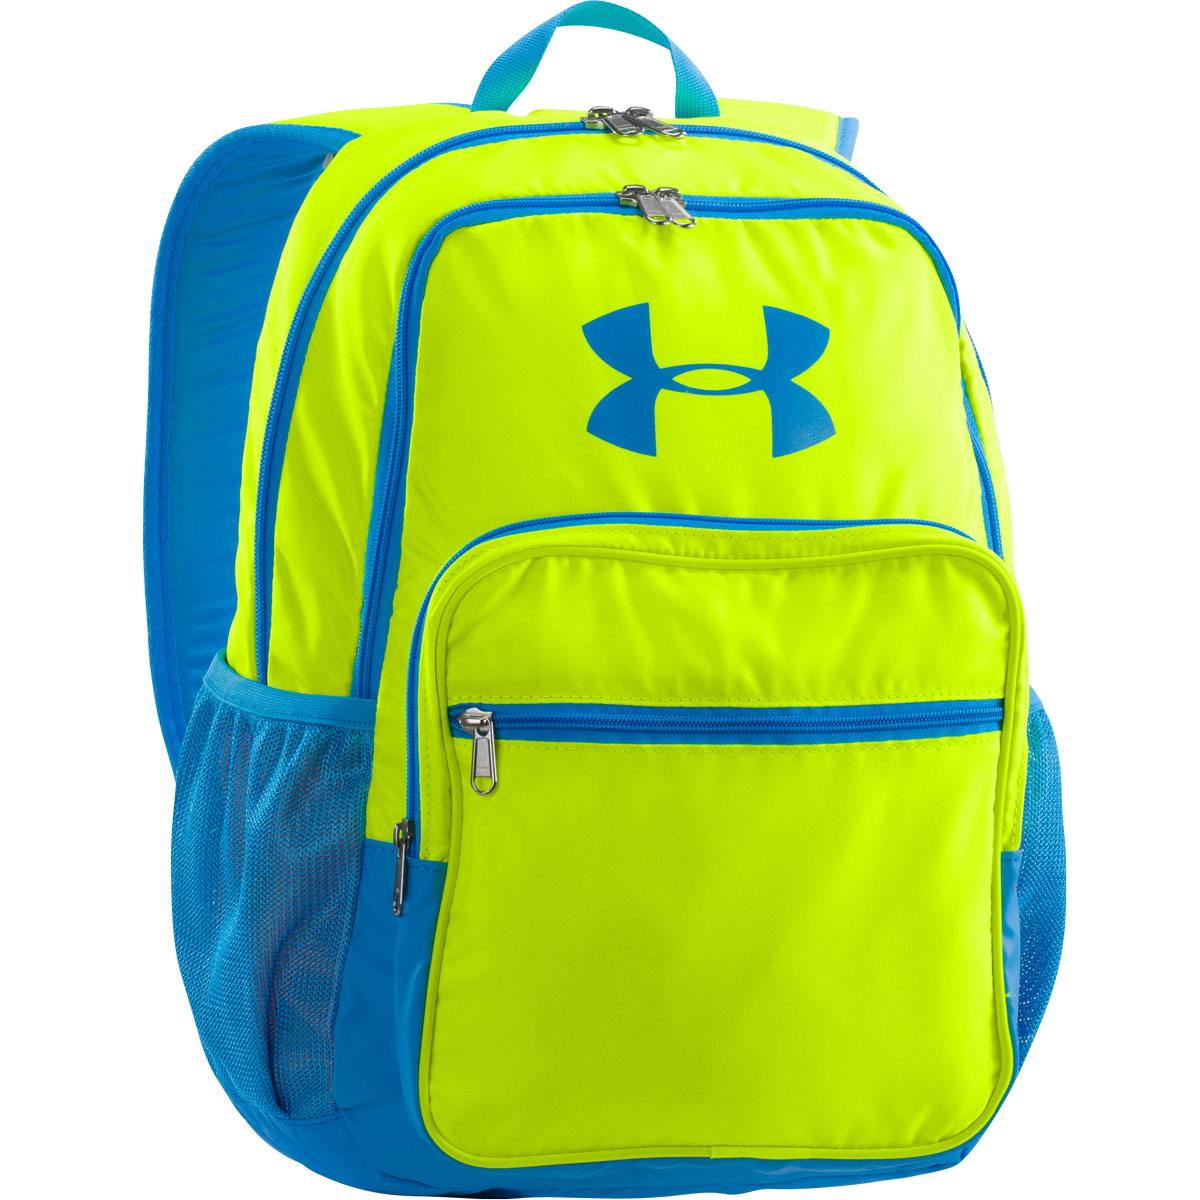 ua storm backpack cheap   OFF35% The Largest Catalog Discounts 3c09ec657f9f6